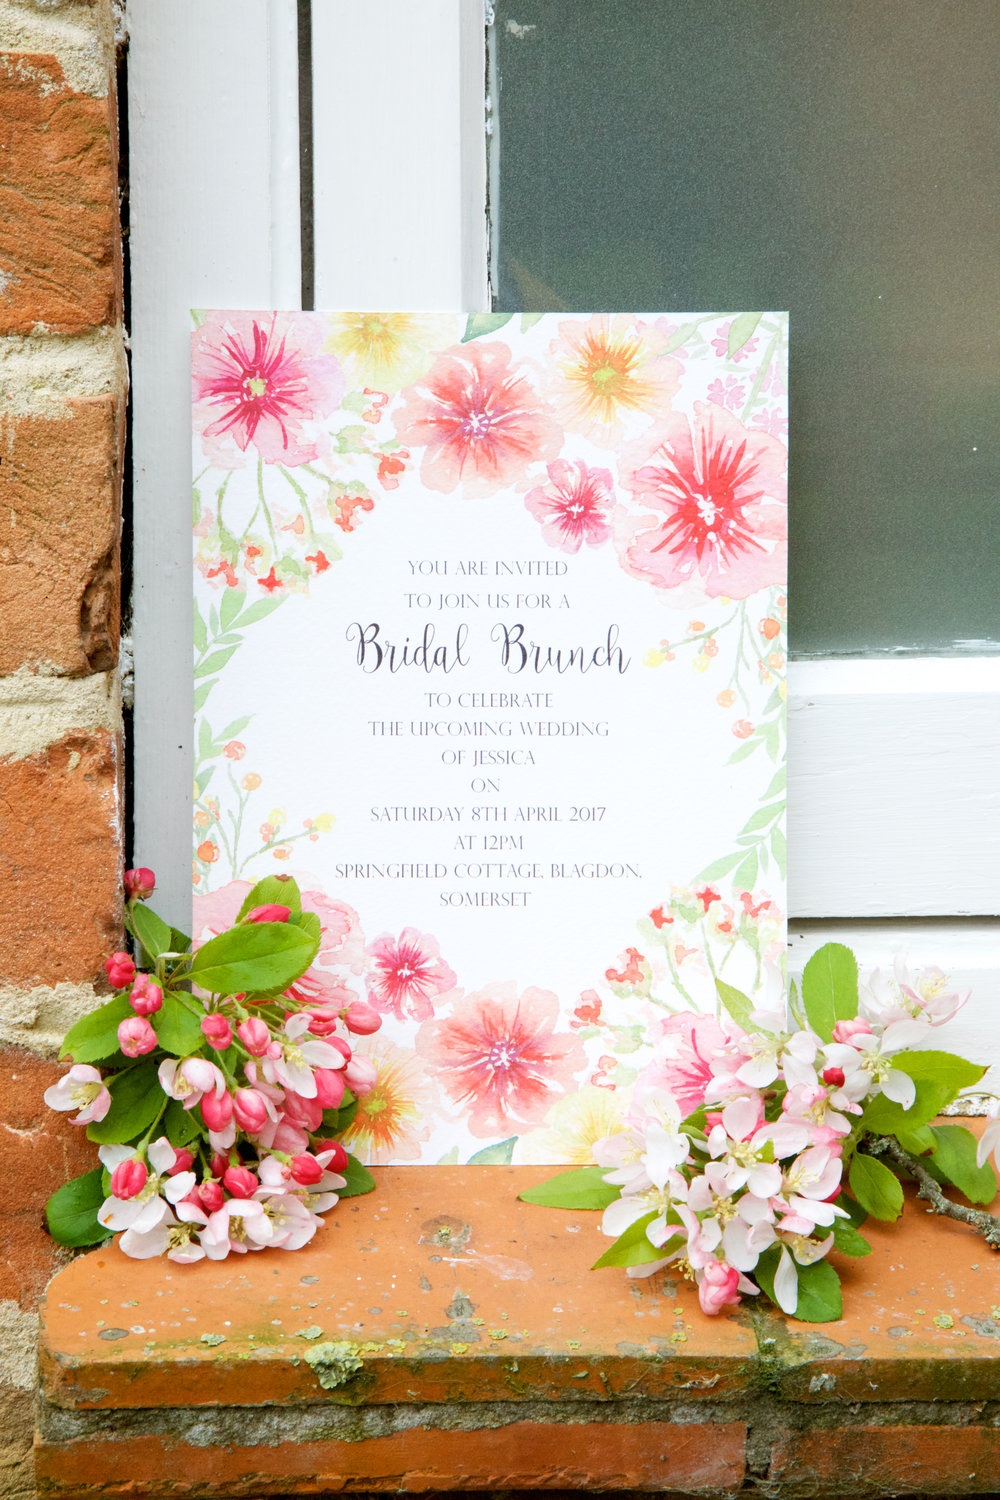 Spring Wedding Invitation.jpg